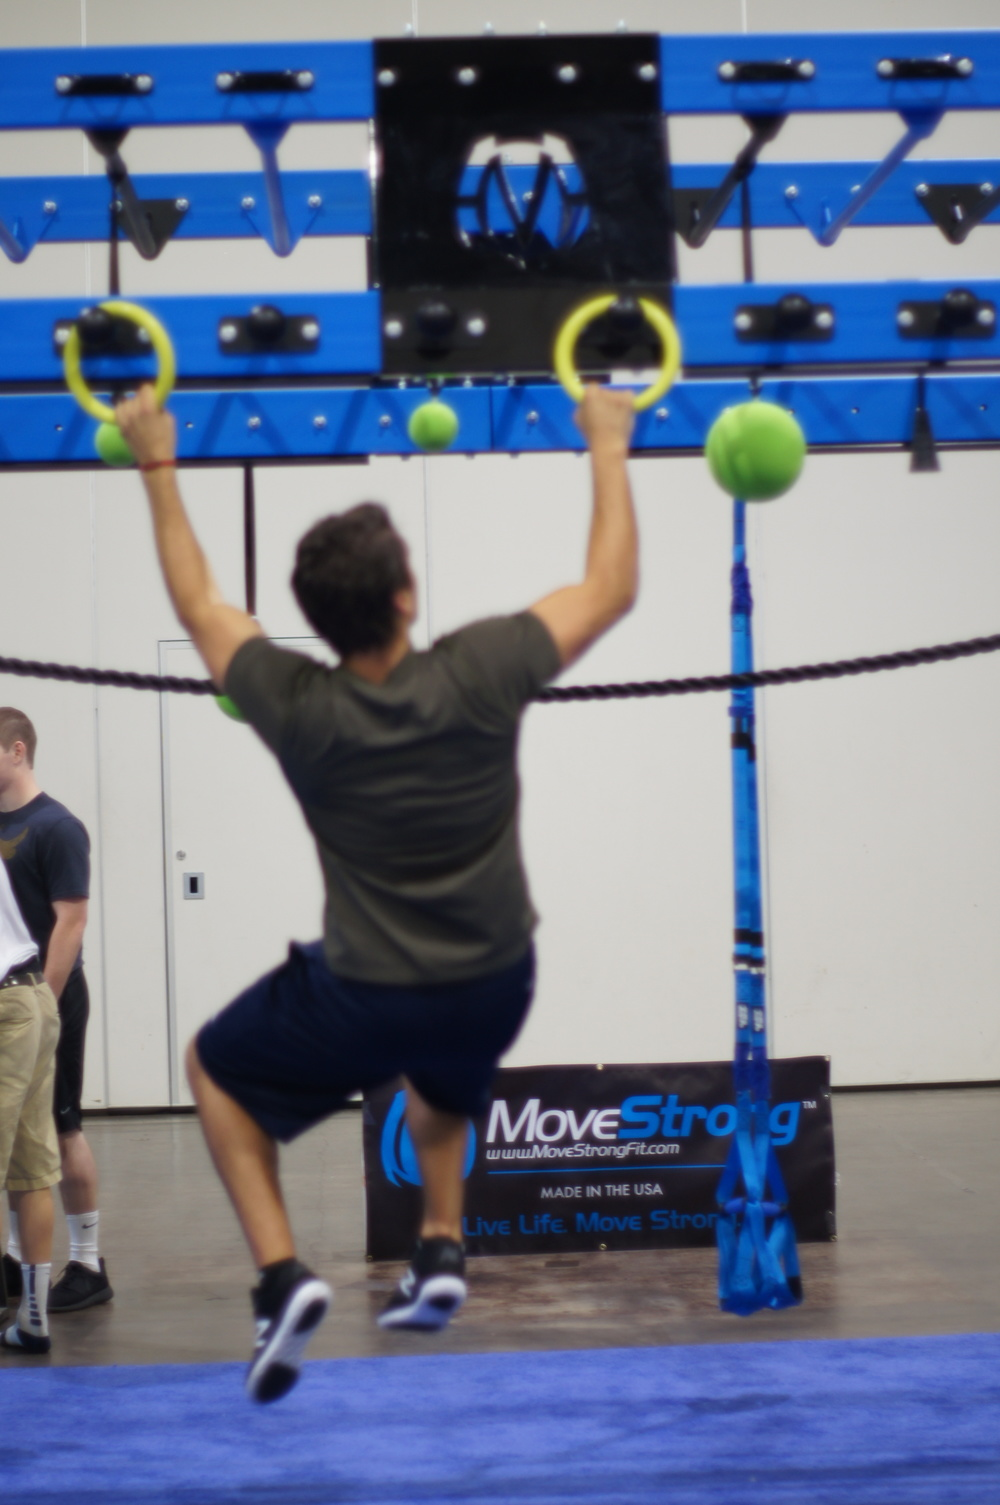 Globe rail for right toss and grip strength pull-ups